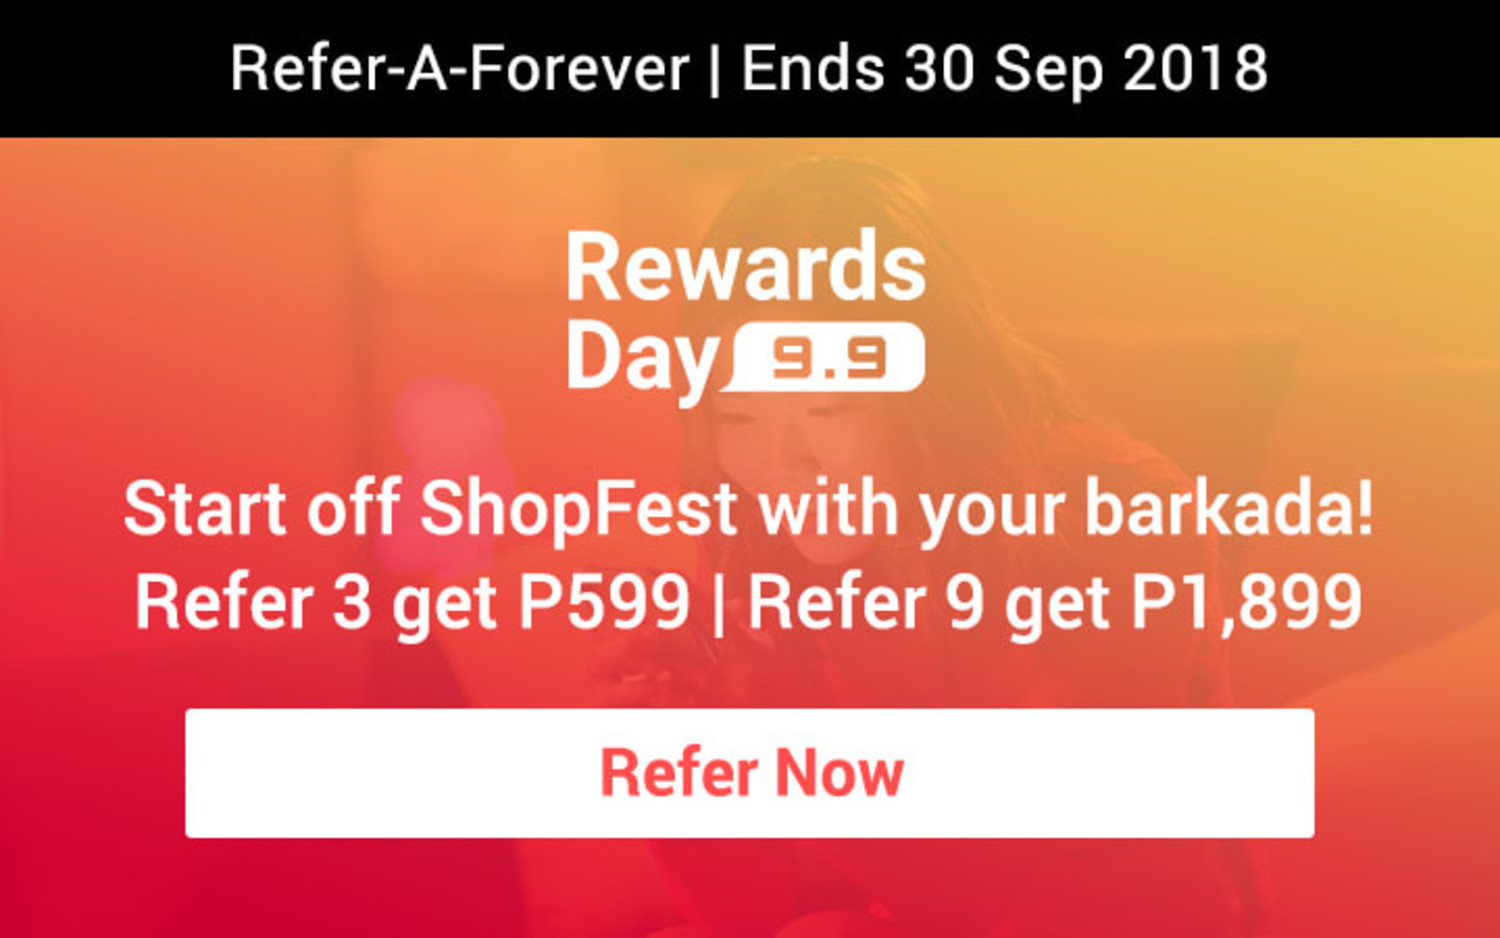 Ends 2018 Sep | Start off ShopFest with your barkada! Refer 3 get P599 | Refer 9 get P1,899